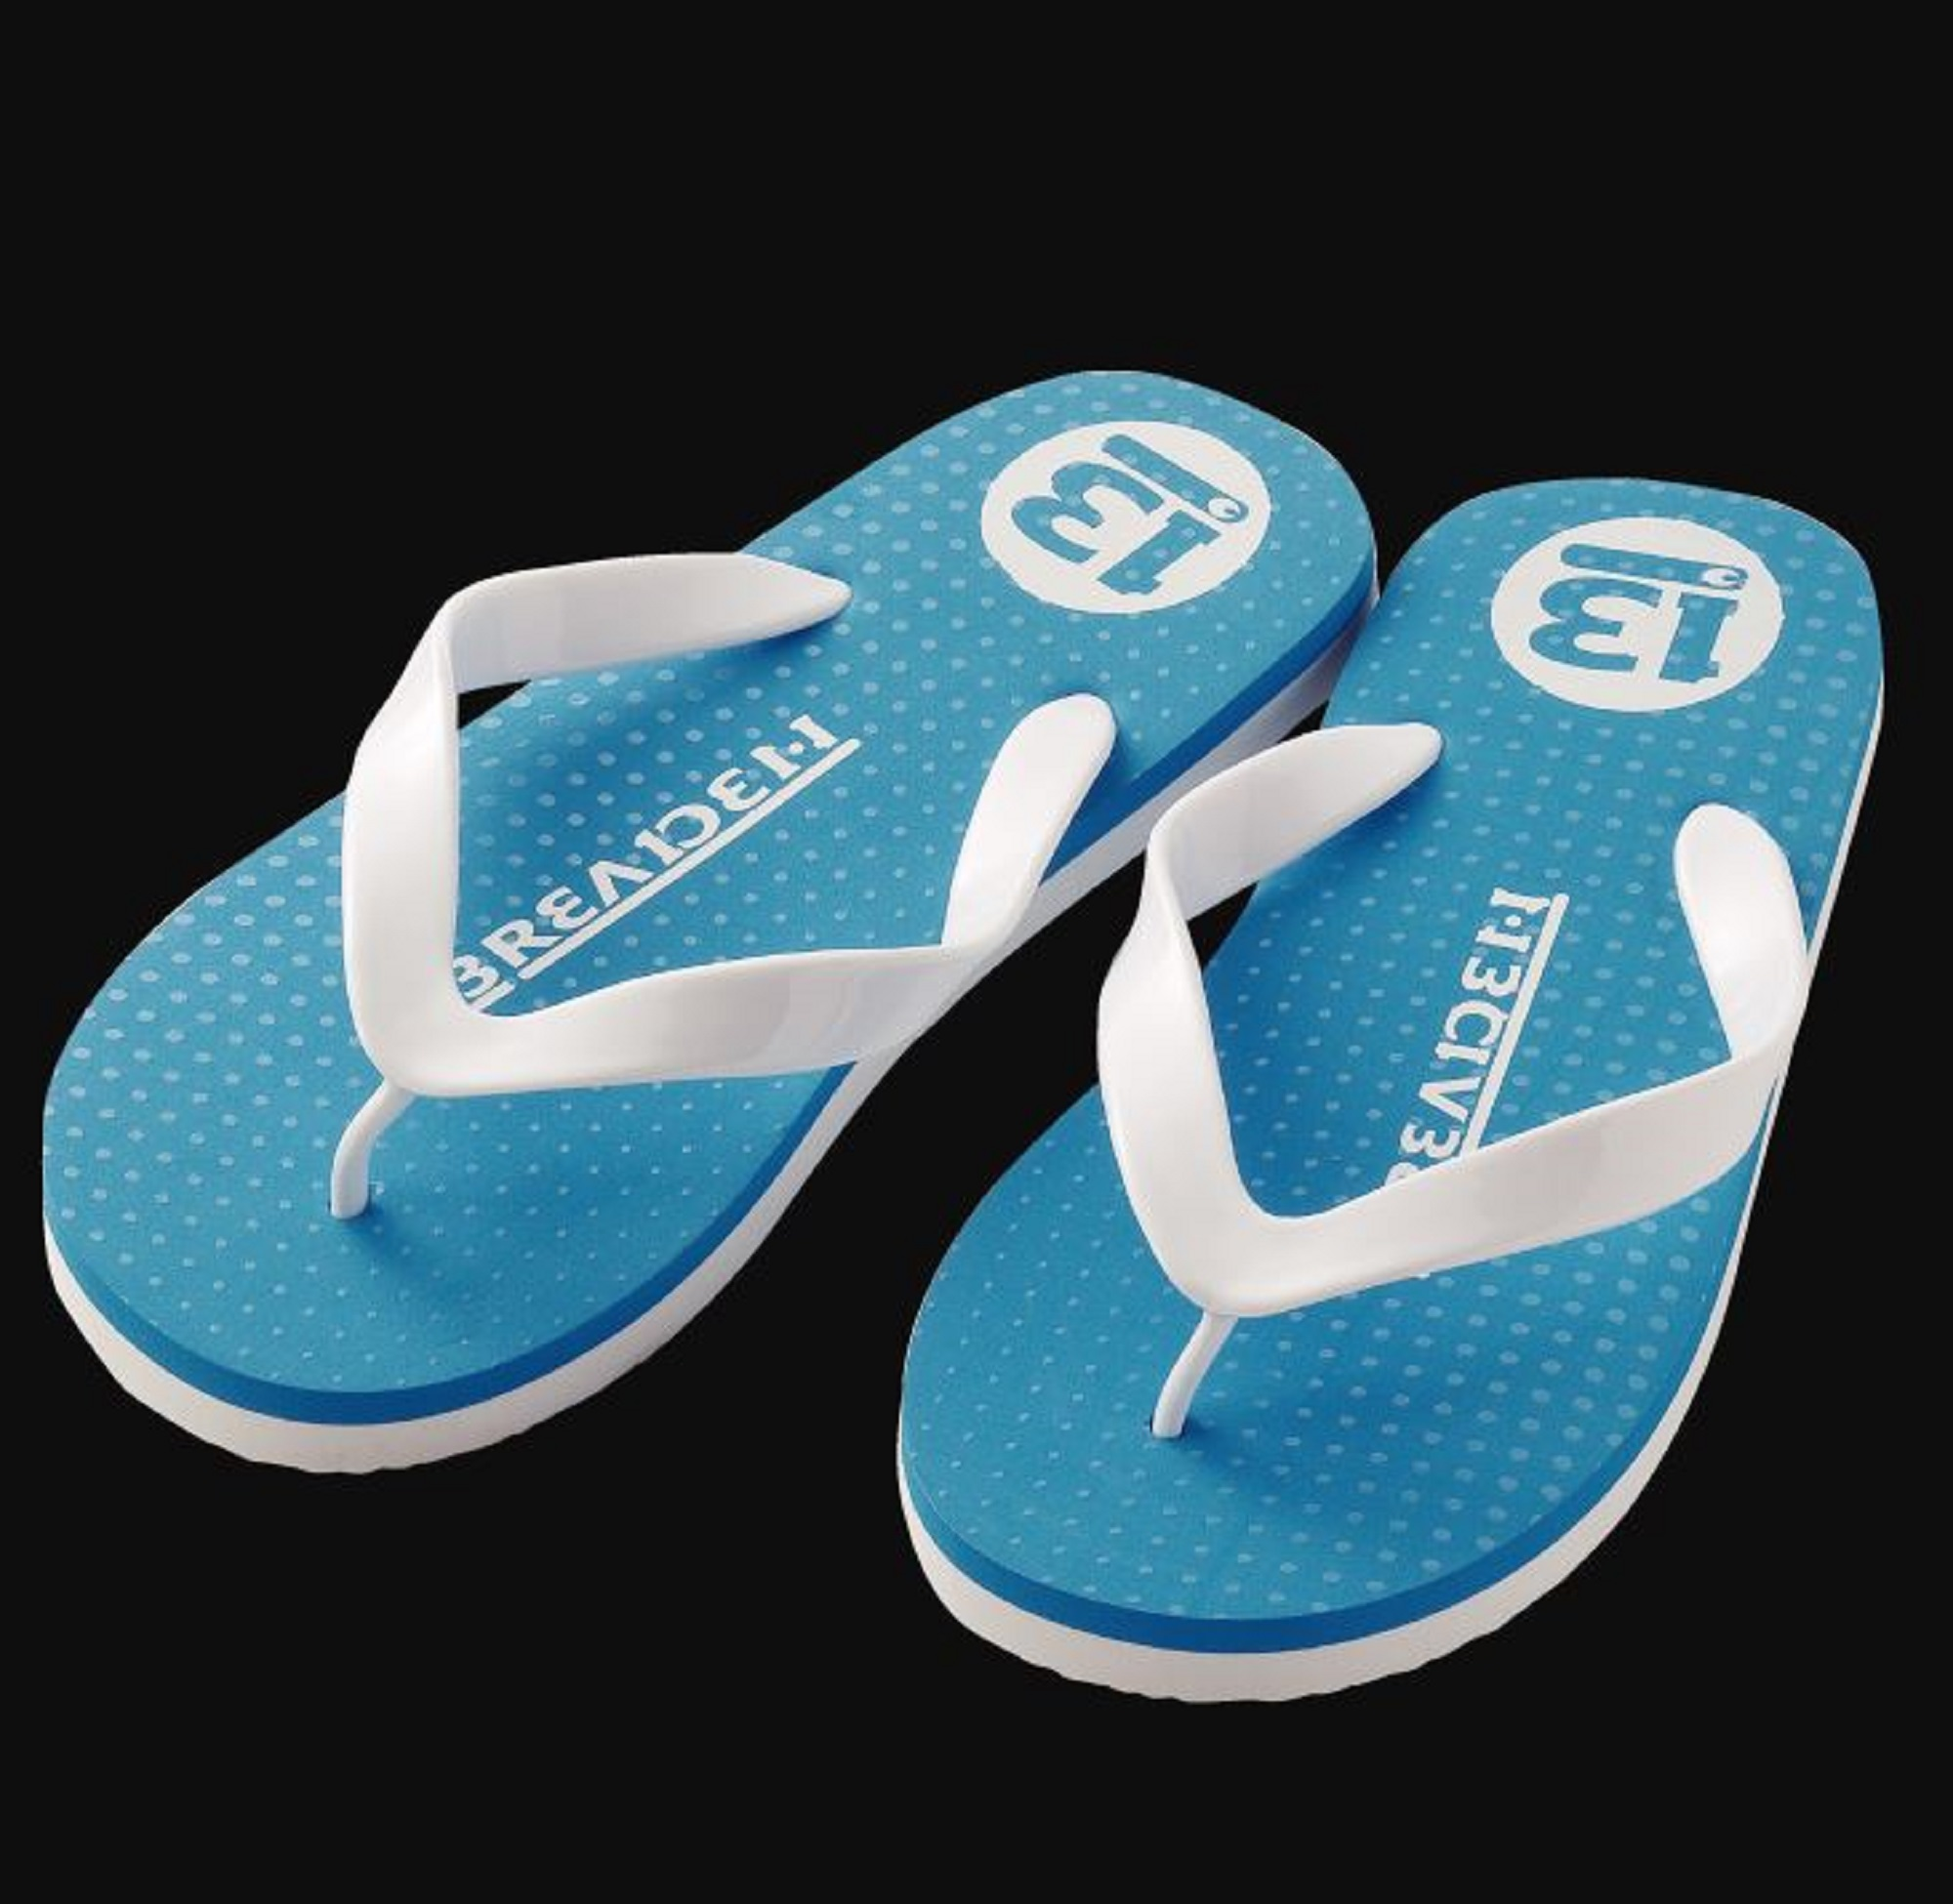 Breaden Beach Sandals Size 27cm 02 (7331)